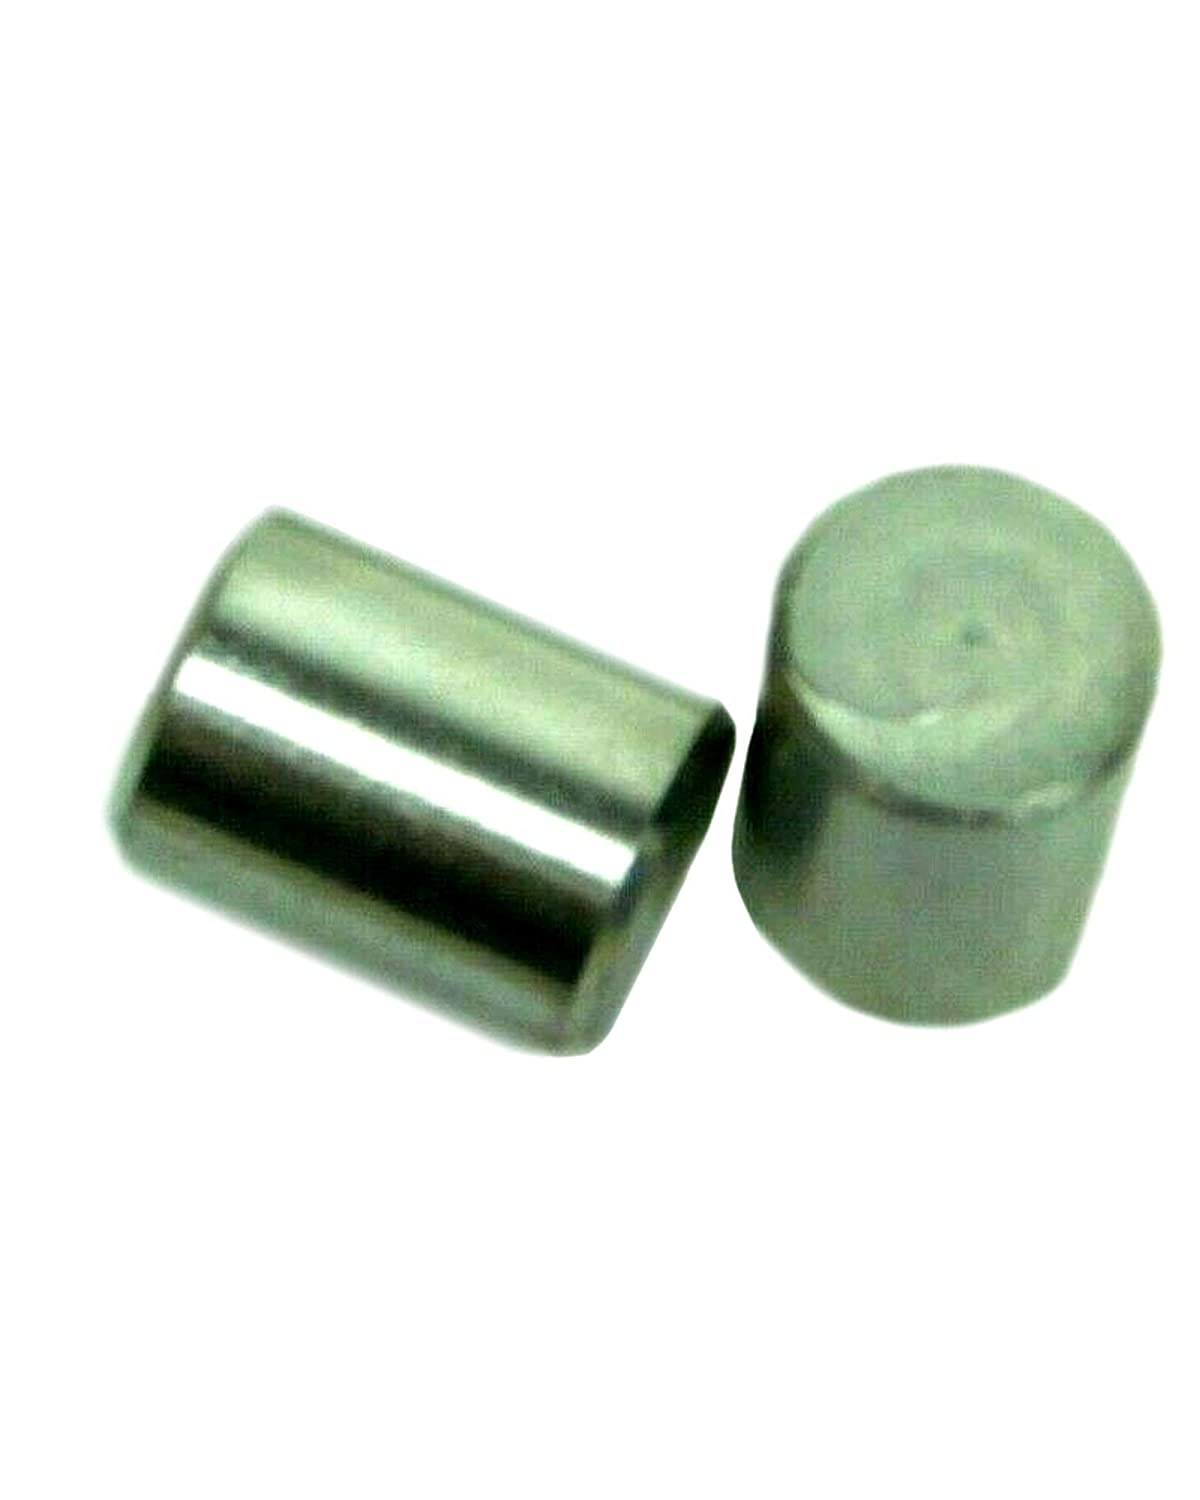 Stainless Steel Dowel Pins - 3/8